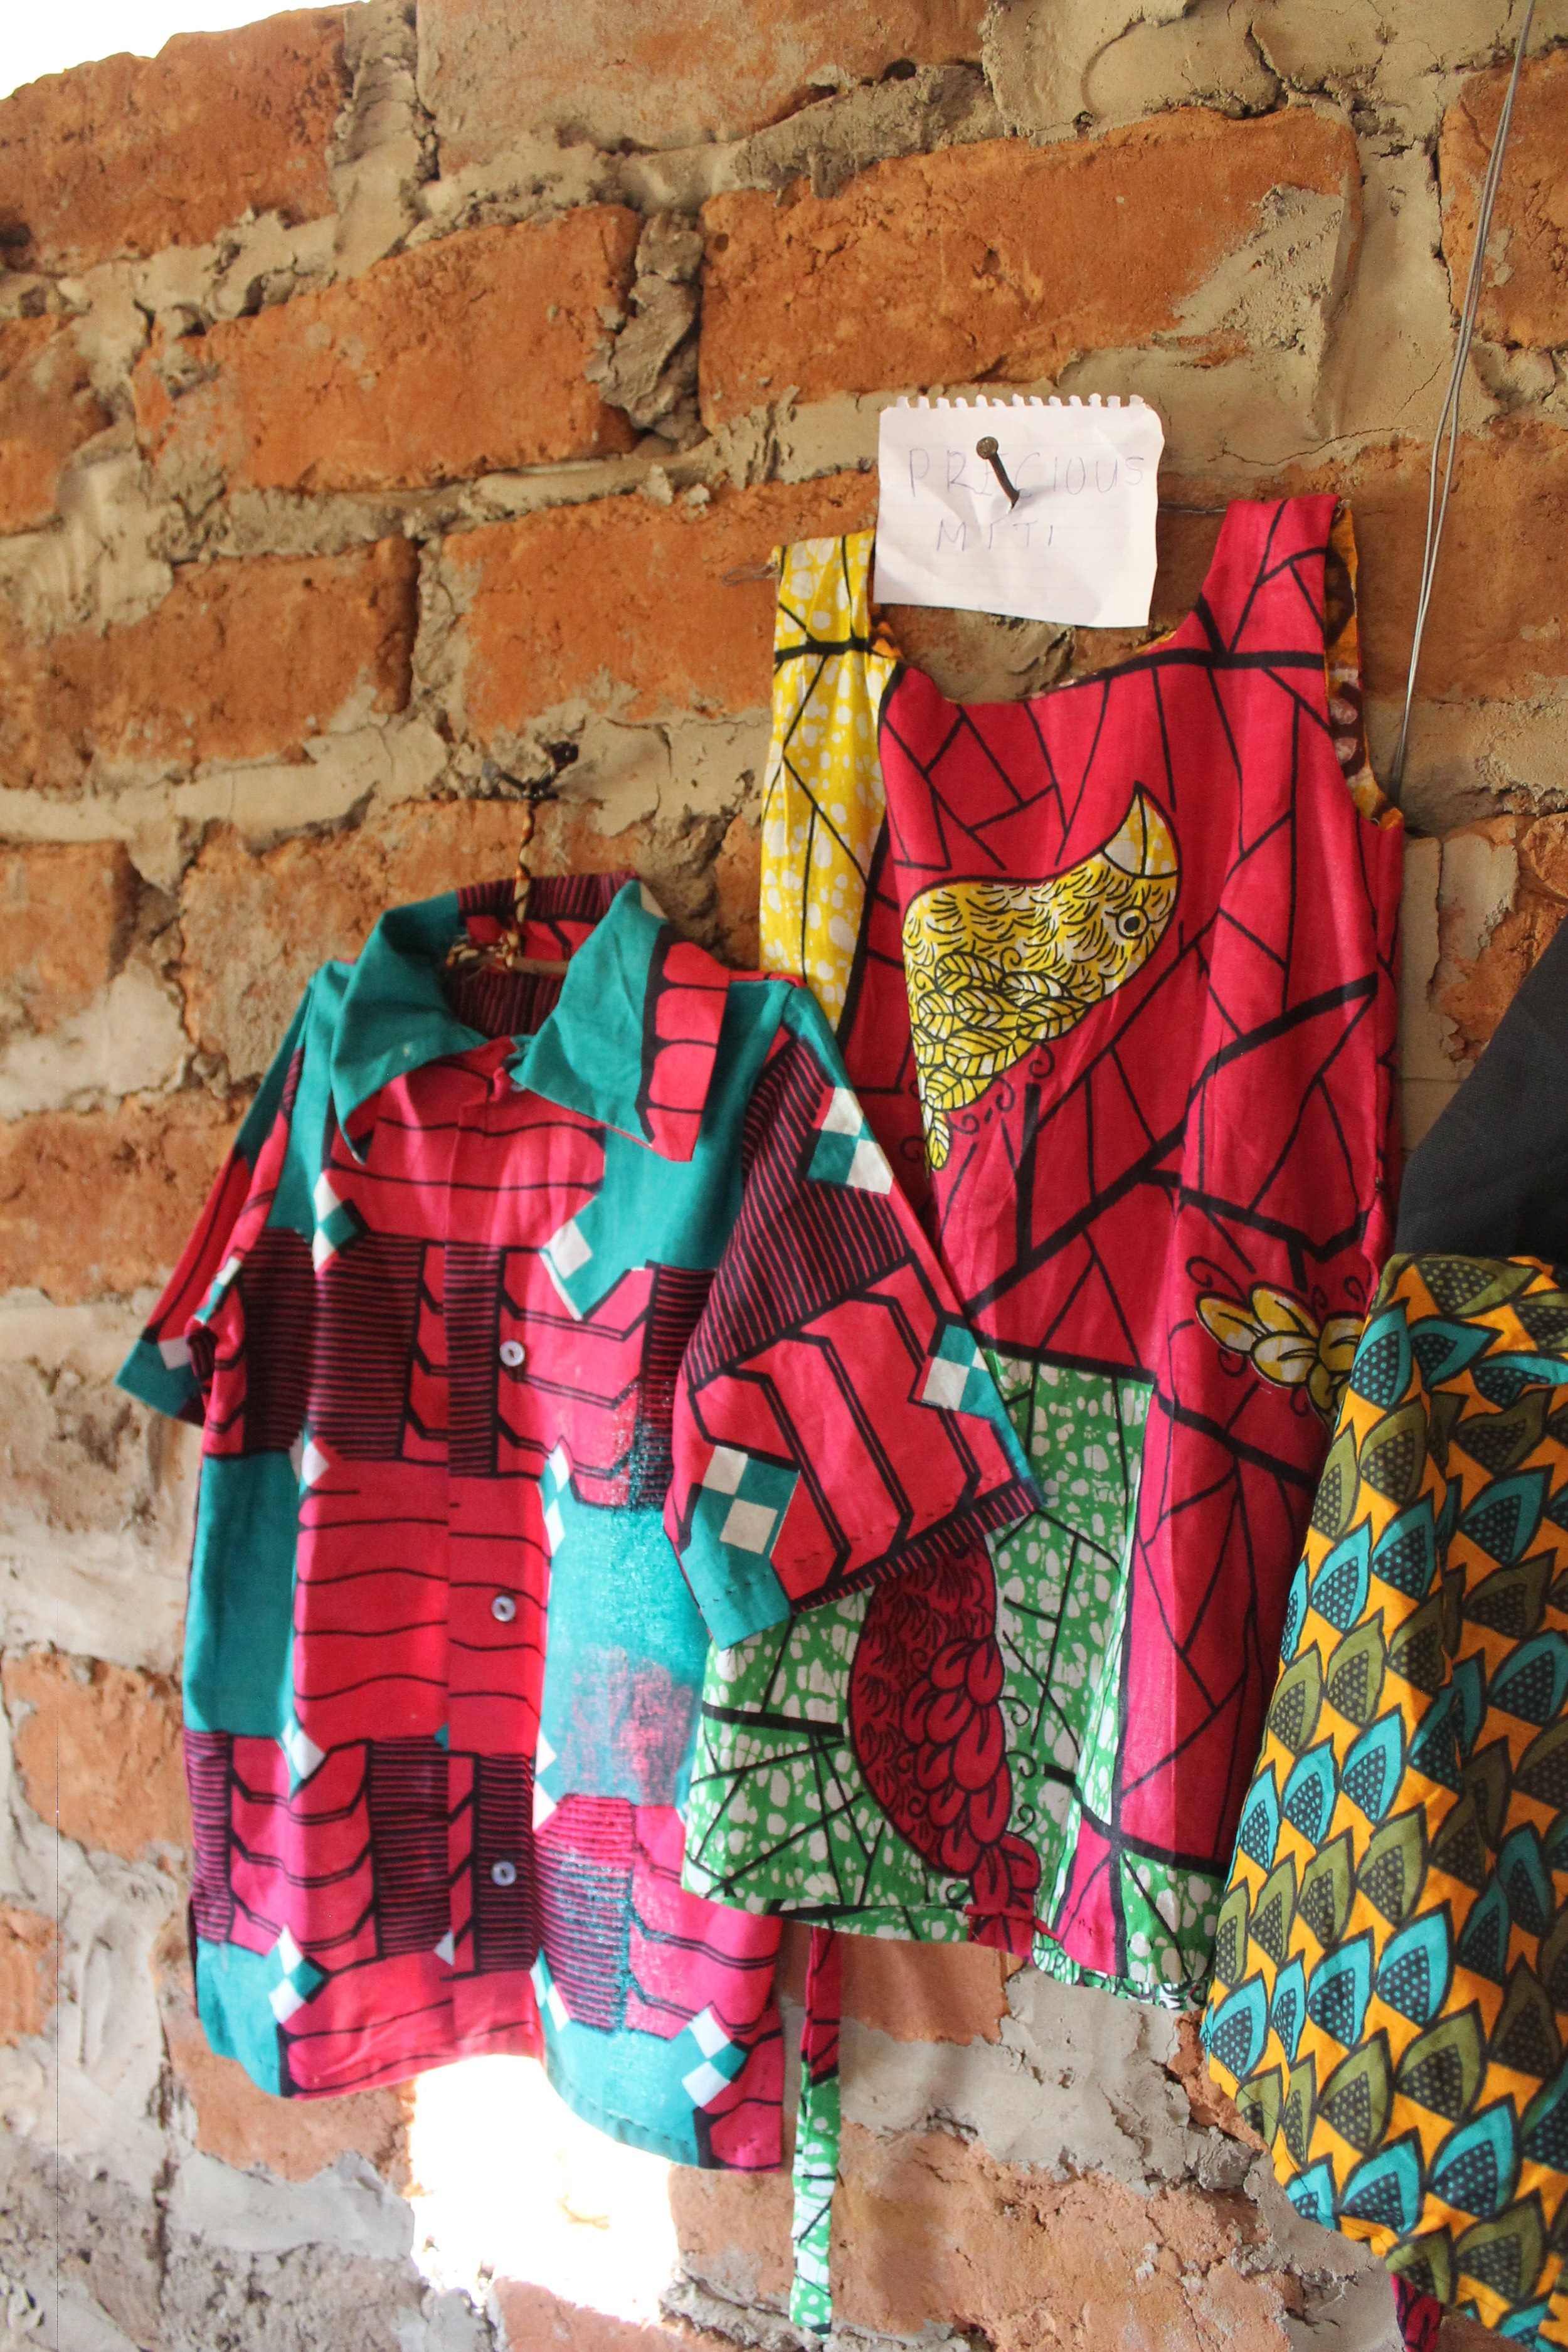 This is Precious' display of her graduation testing garments. Each woman made these without electricity, without a fancy machine, many of them stitching garments entirely by hand without patterns. Incredible stuff right there.